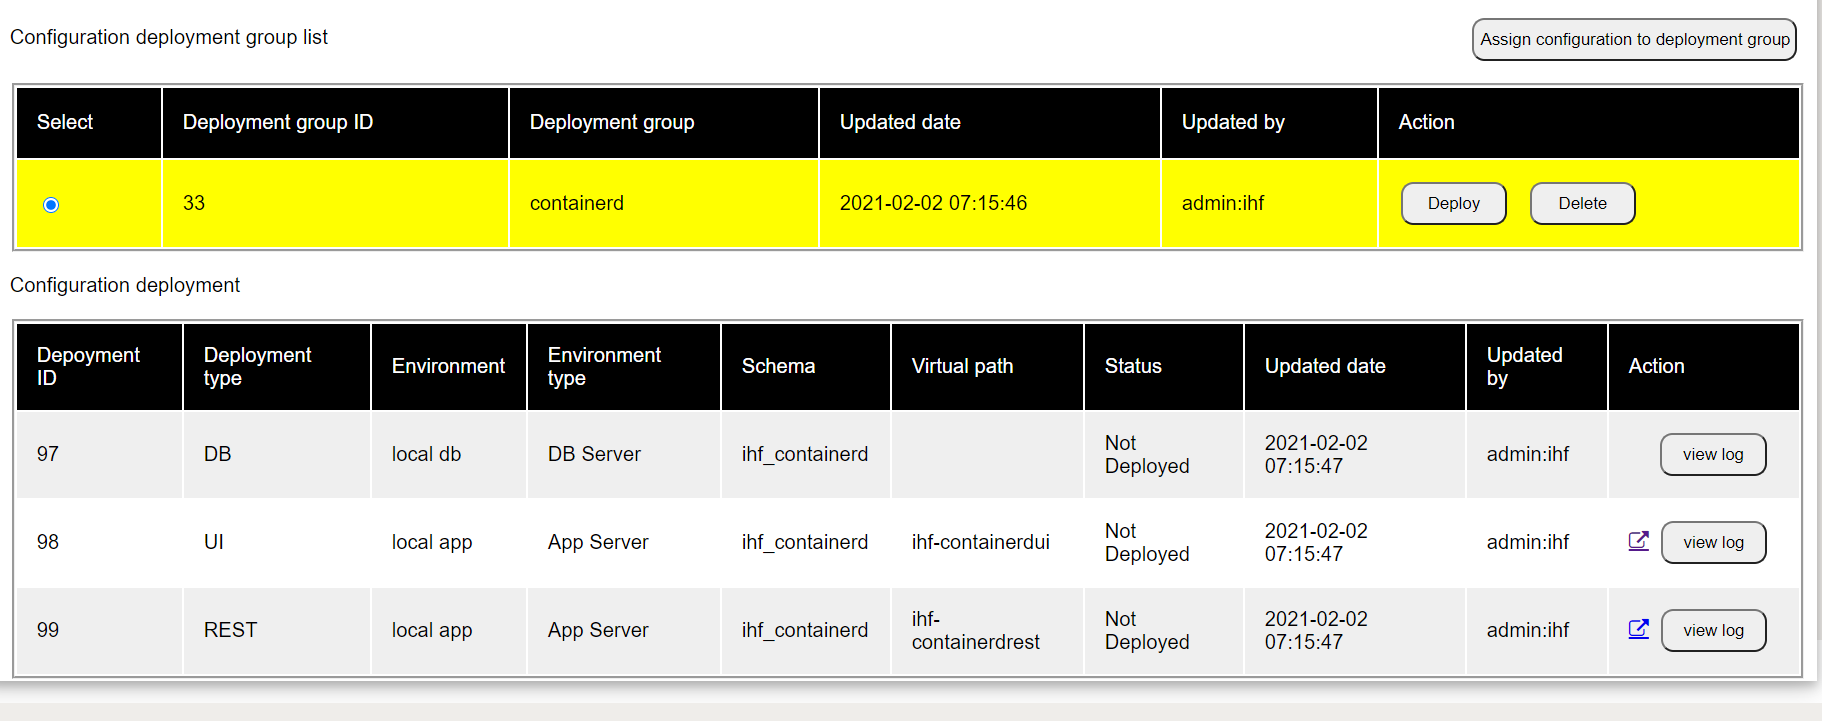 deploy config to deployment group